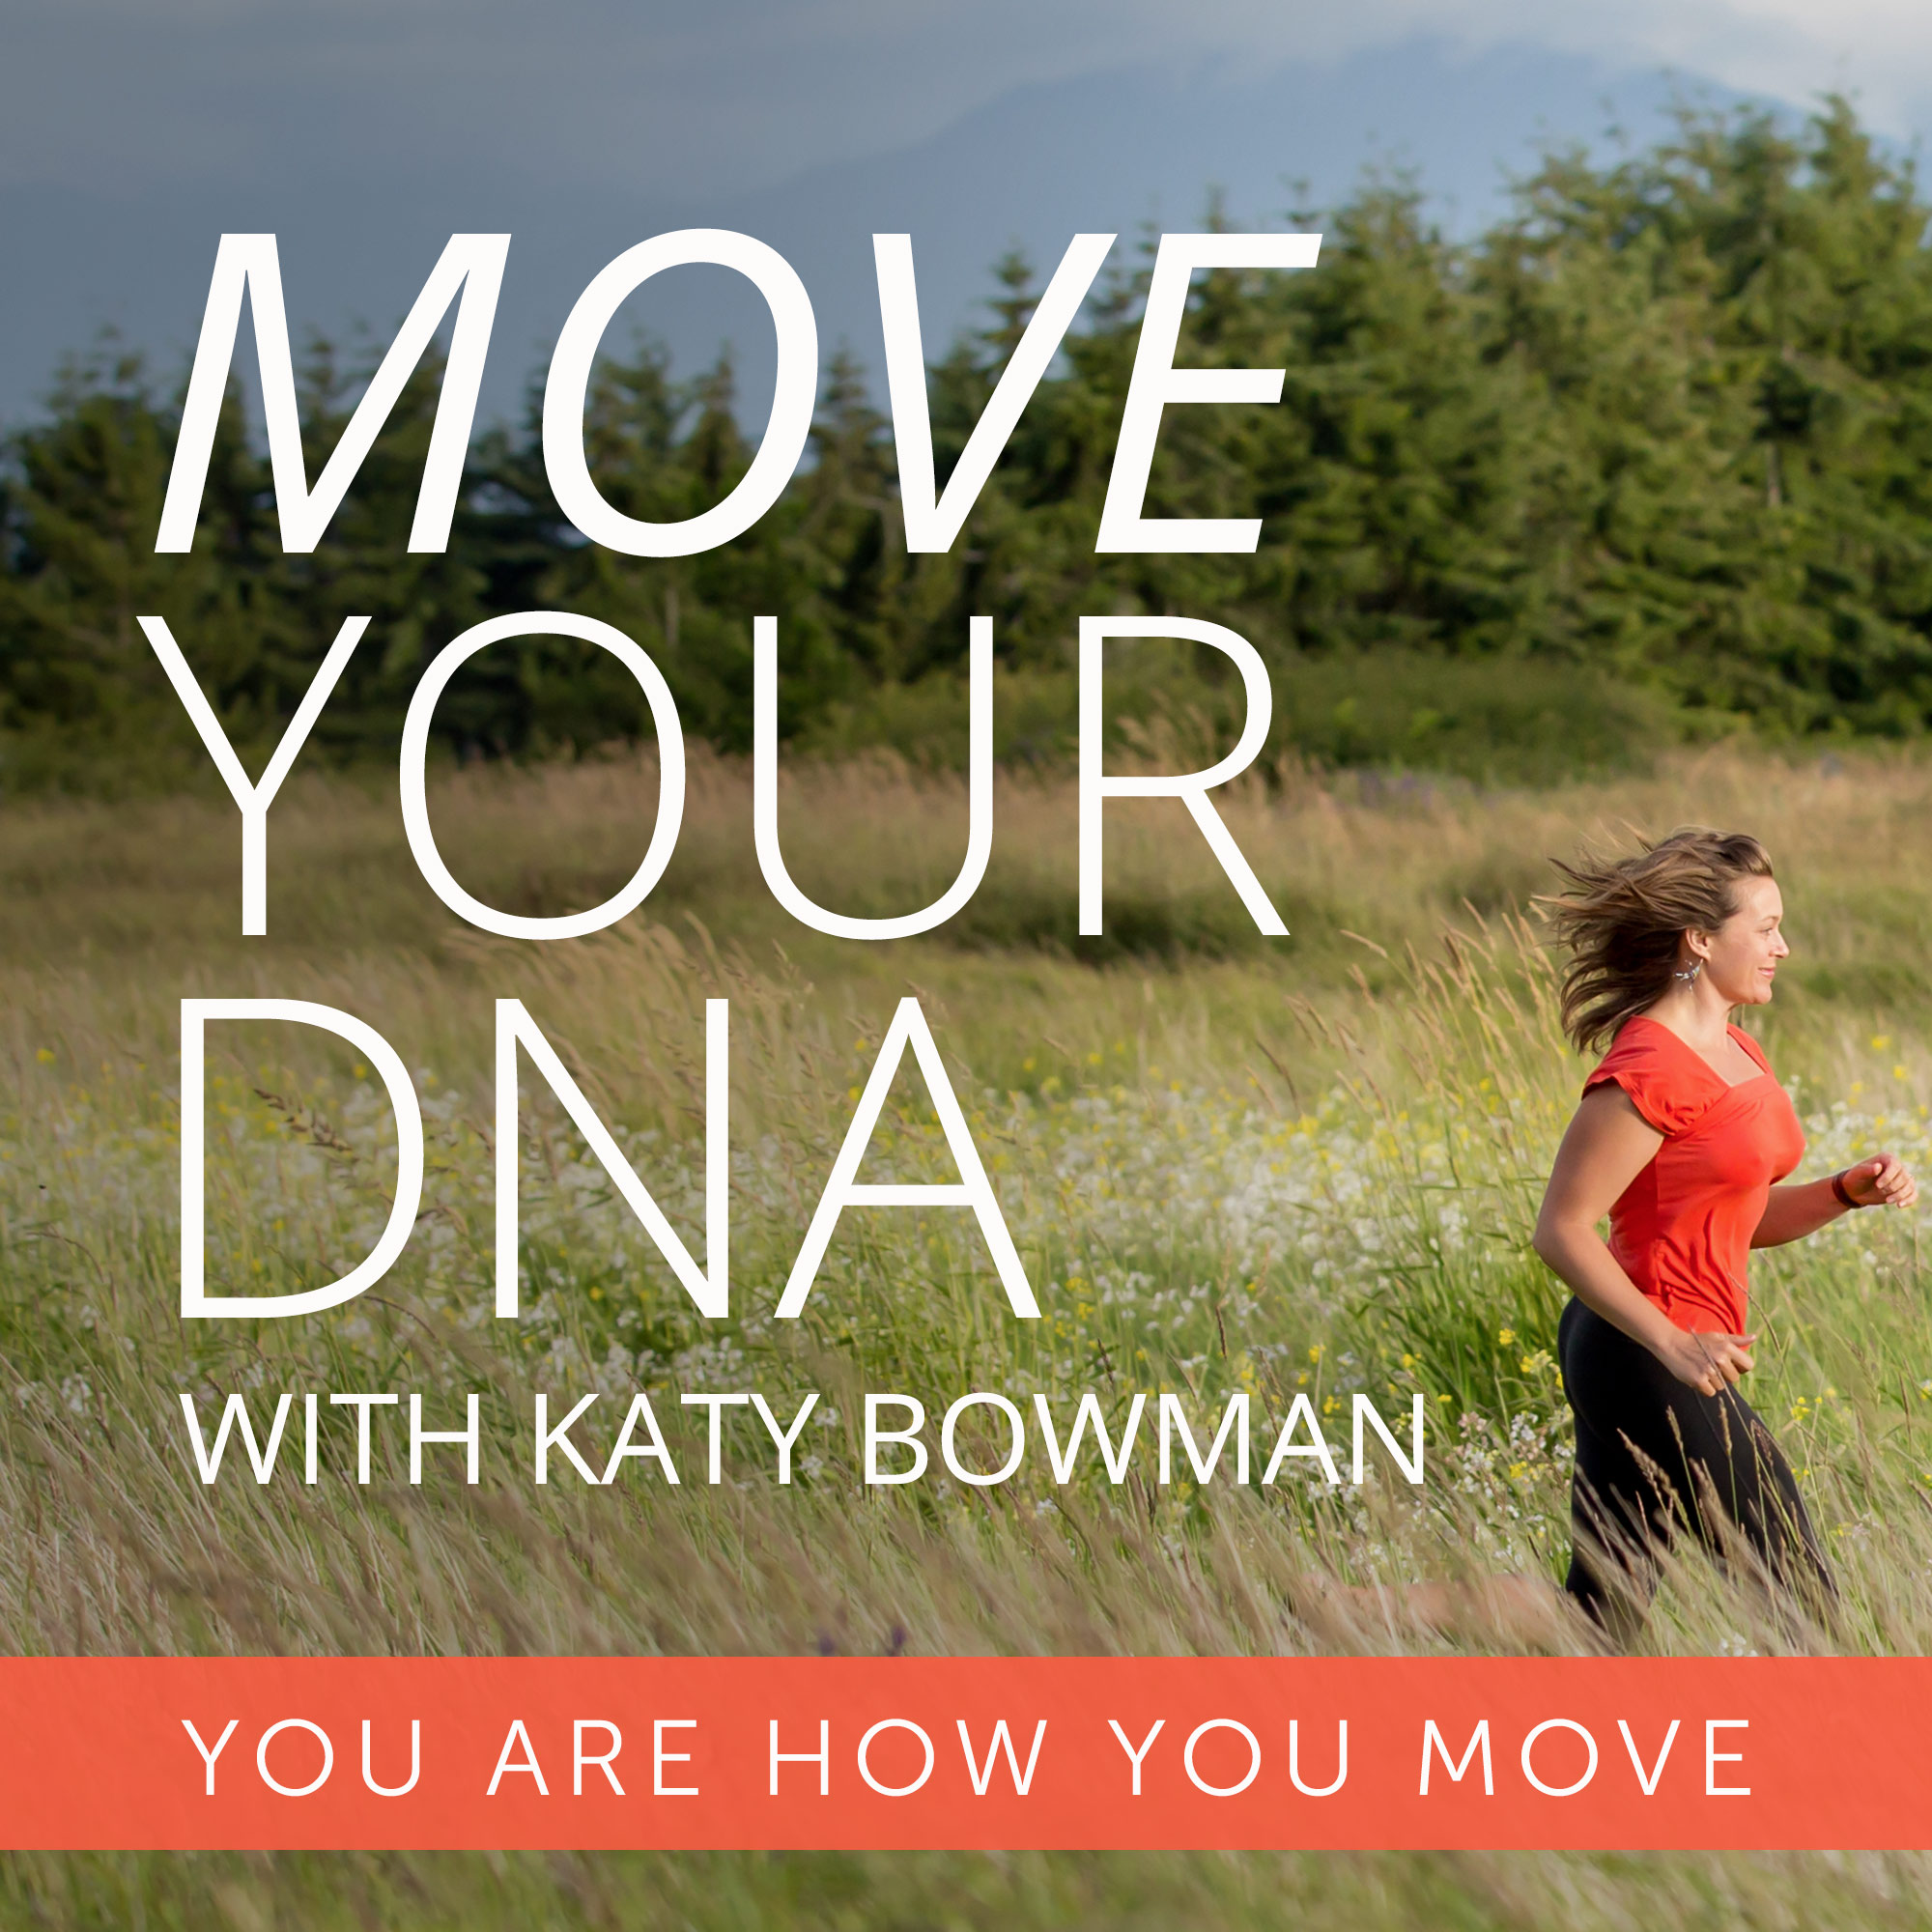 Health Podcasts For Women - Move Your DNA With Katy Bowman